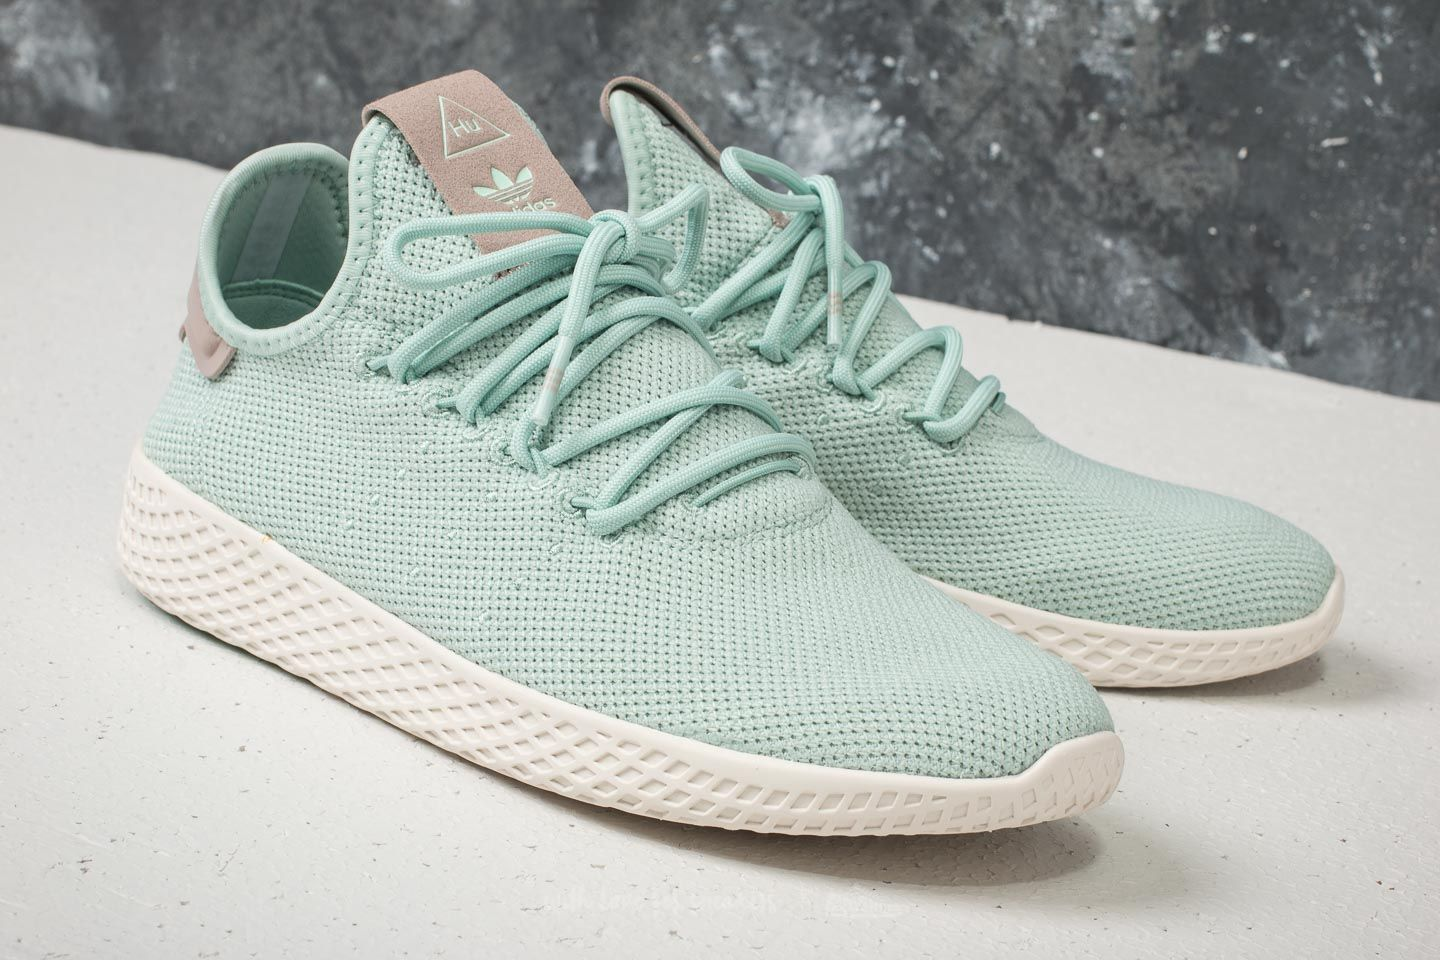 adidas x Pharrell Williams Tennis HU W Ash Green  Ash Green  Ash Grey at 535bc018f